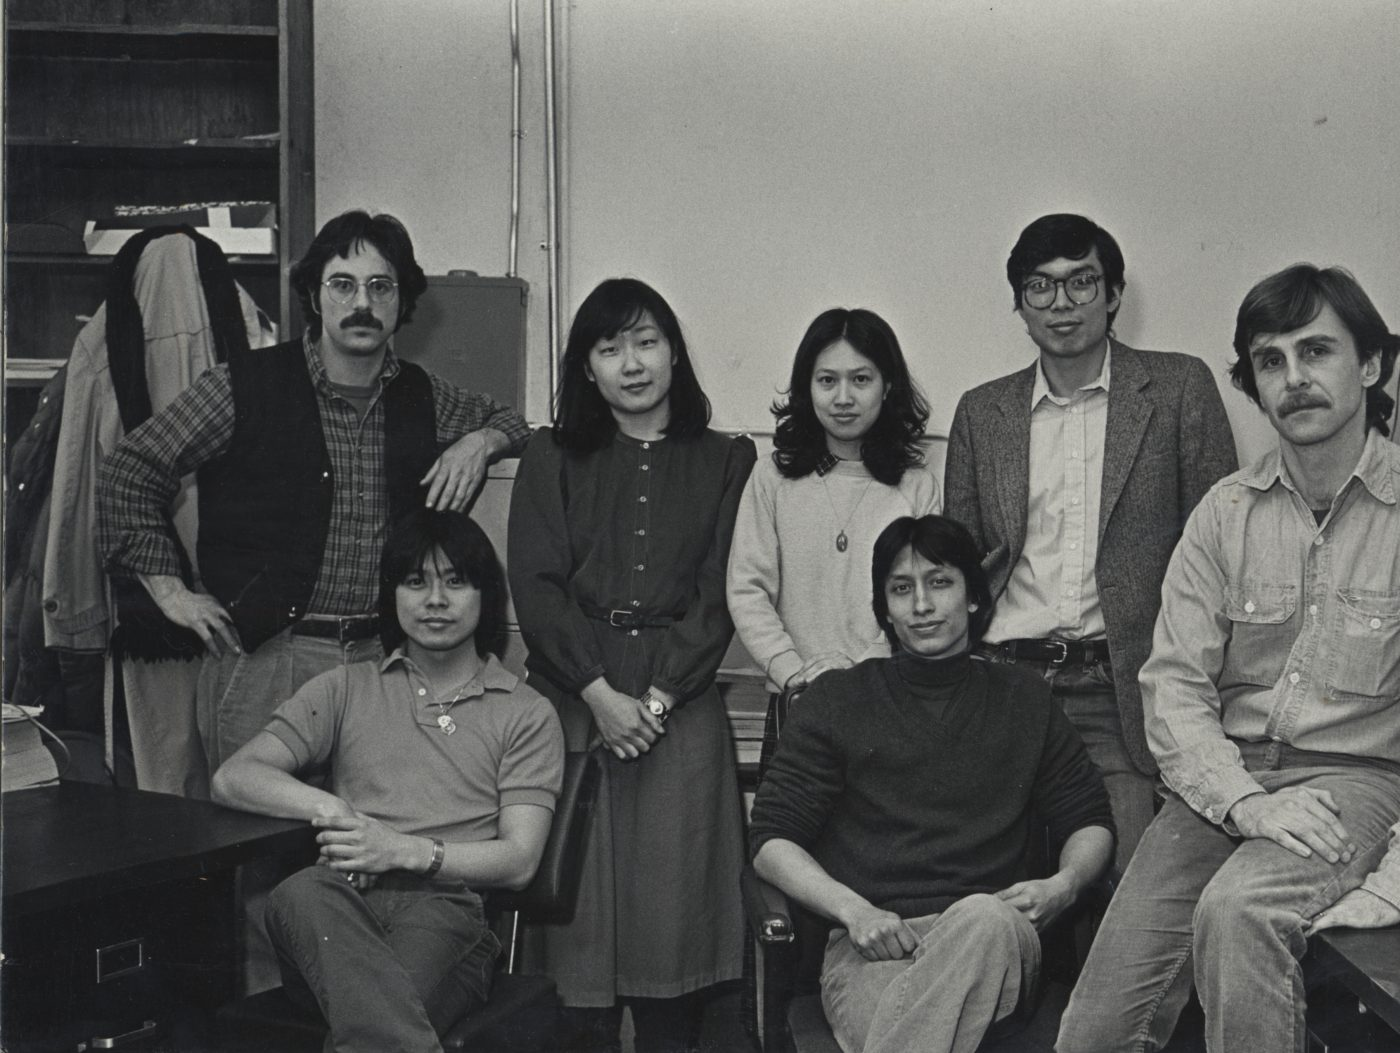 03 & 04 June 2019 Posted. Paul Calhoun is the farthest on the right, Bud Glick is on the far left in the photograph, Museum of Chinese in America (MOCA) Institutional Collection. Paul Calhoun位于照片的最右边,Bud Glick位于照片的最左边,美国华人博物馆(MOCA)机构档案